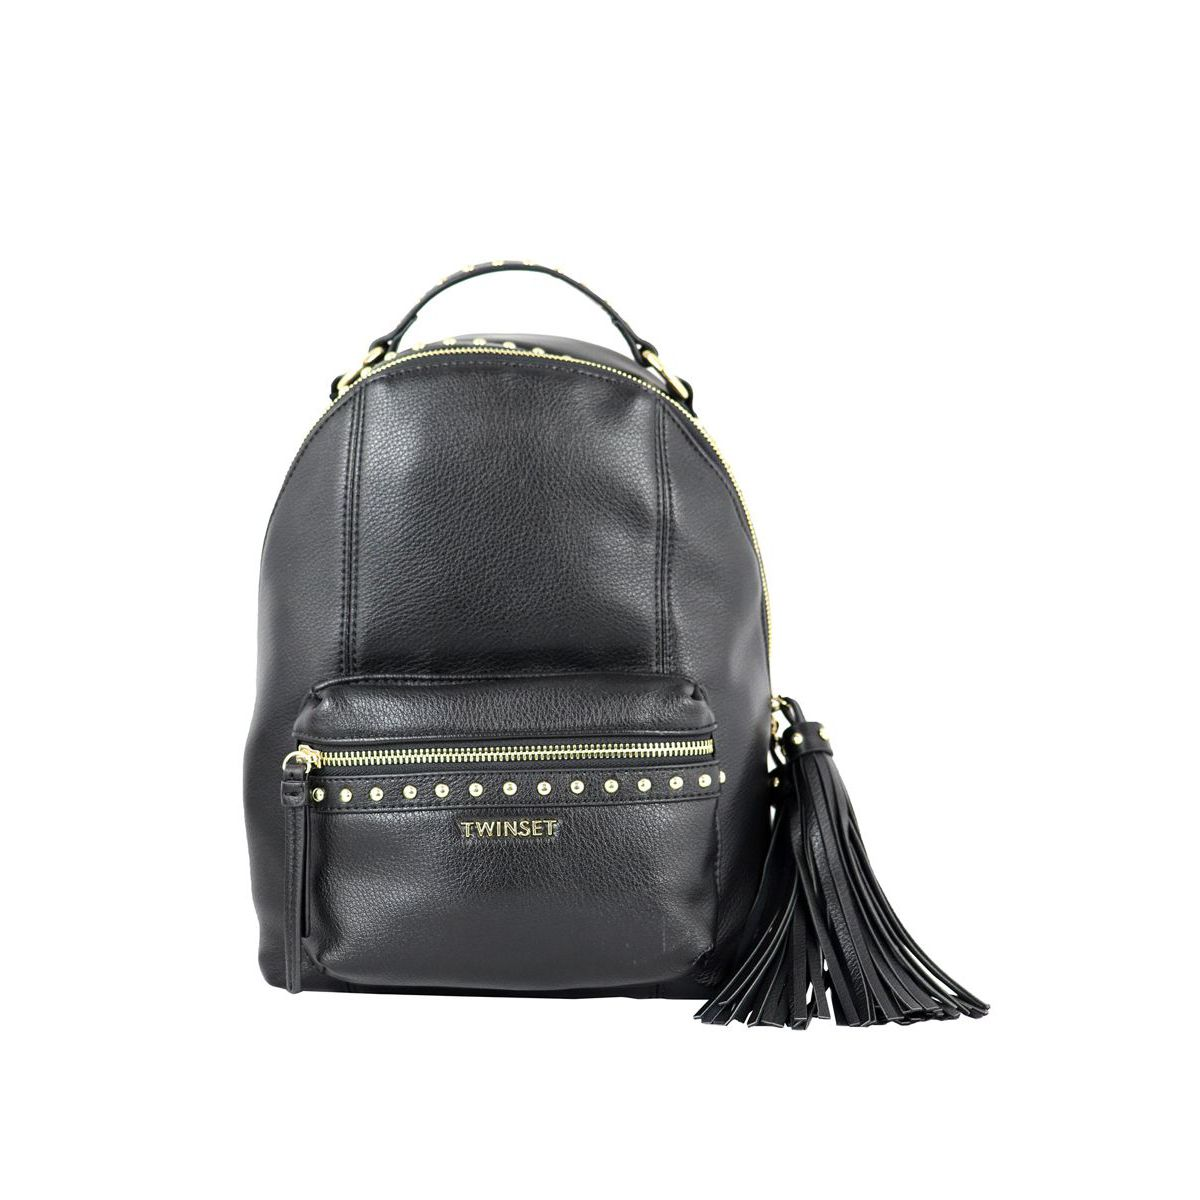 Leatherette backpack with studs applications Black Twin-Set